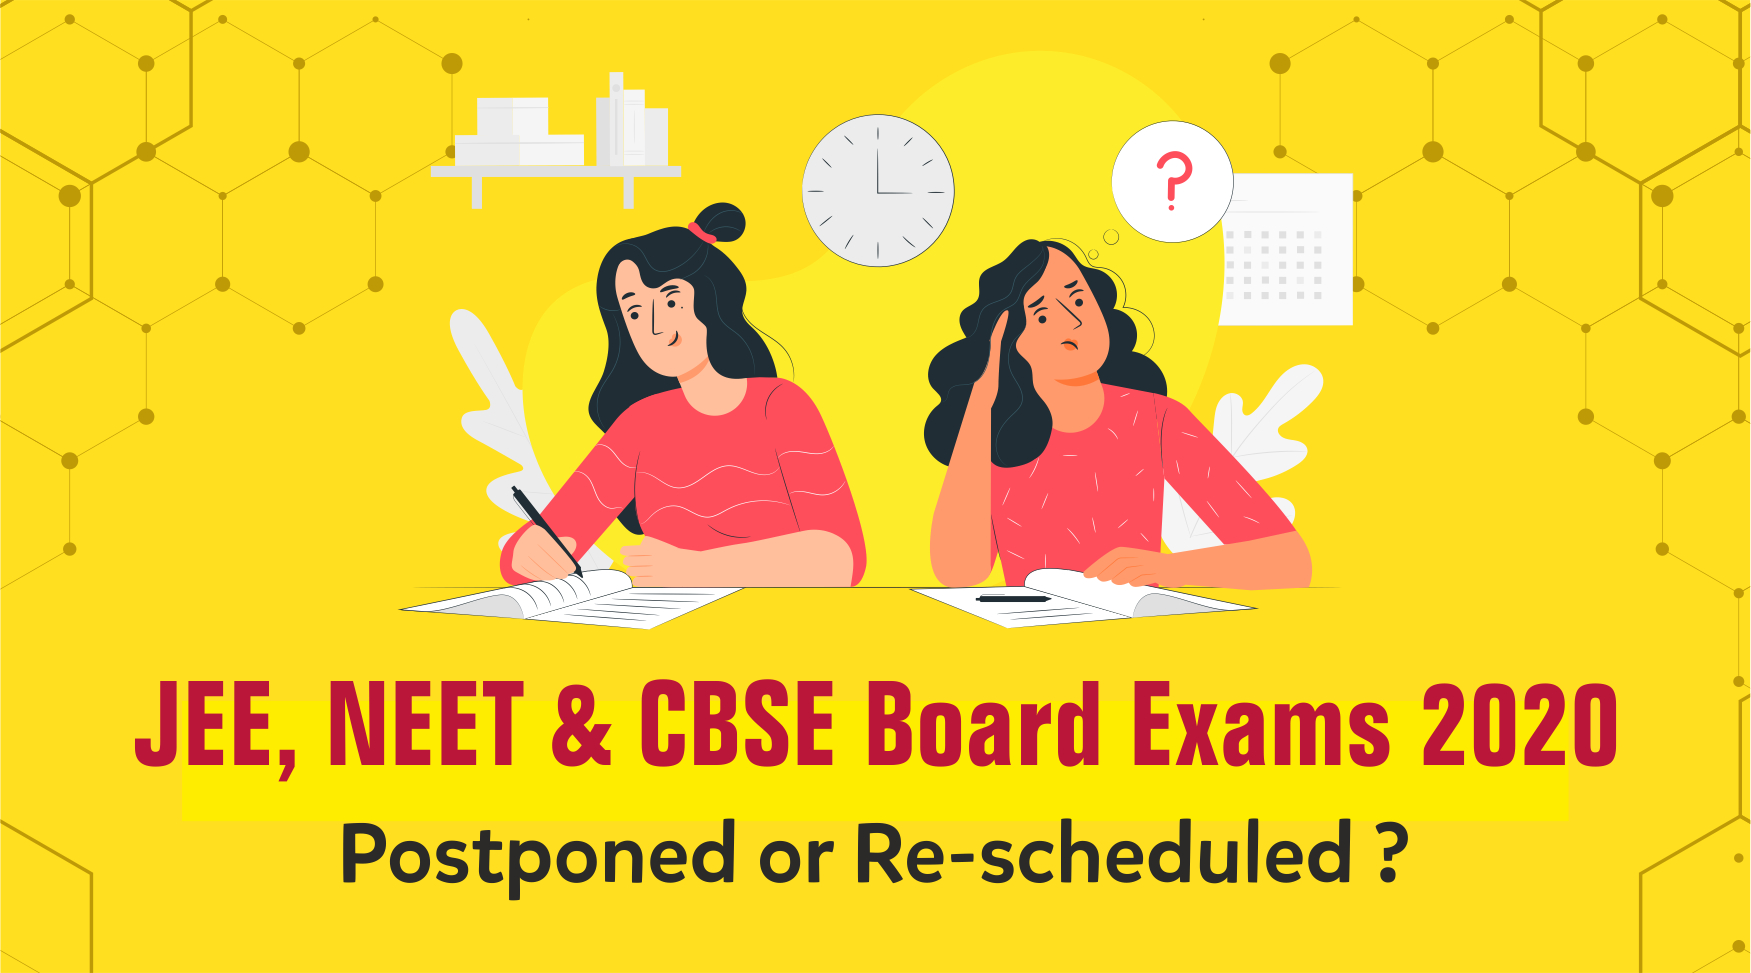 The final stance of the CBSE on pending class 10 and 12 board exams 2020